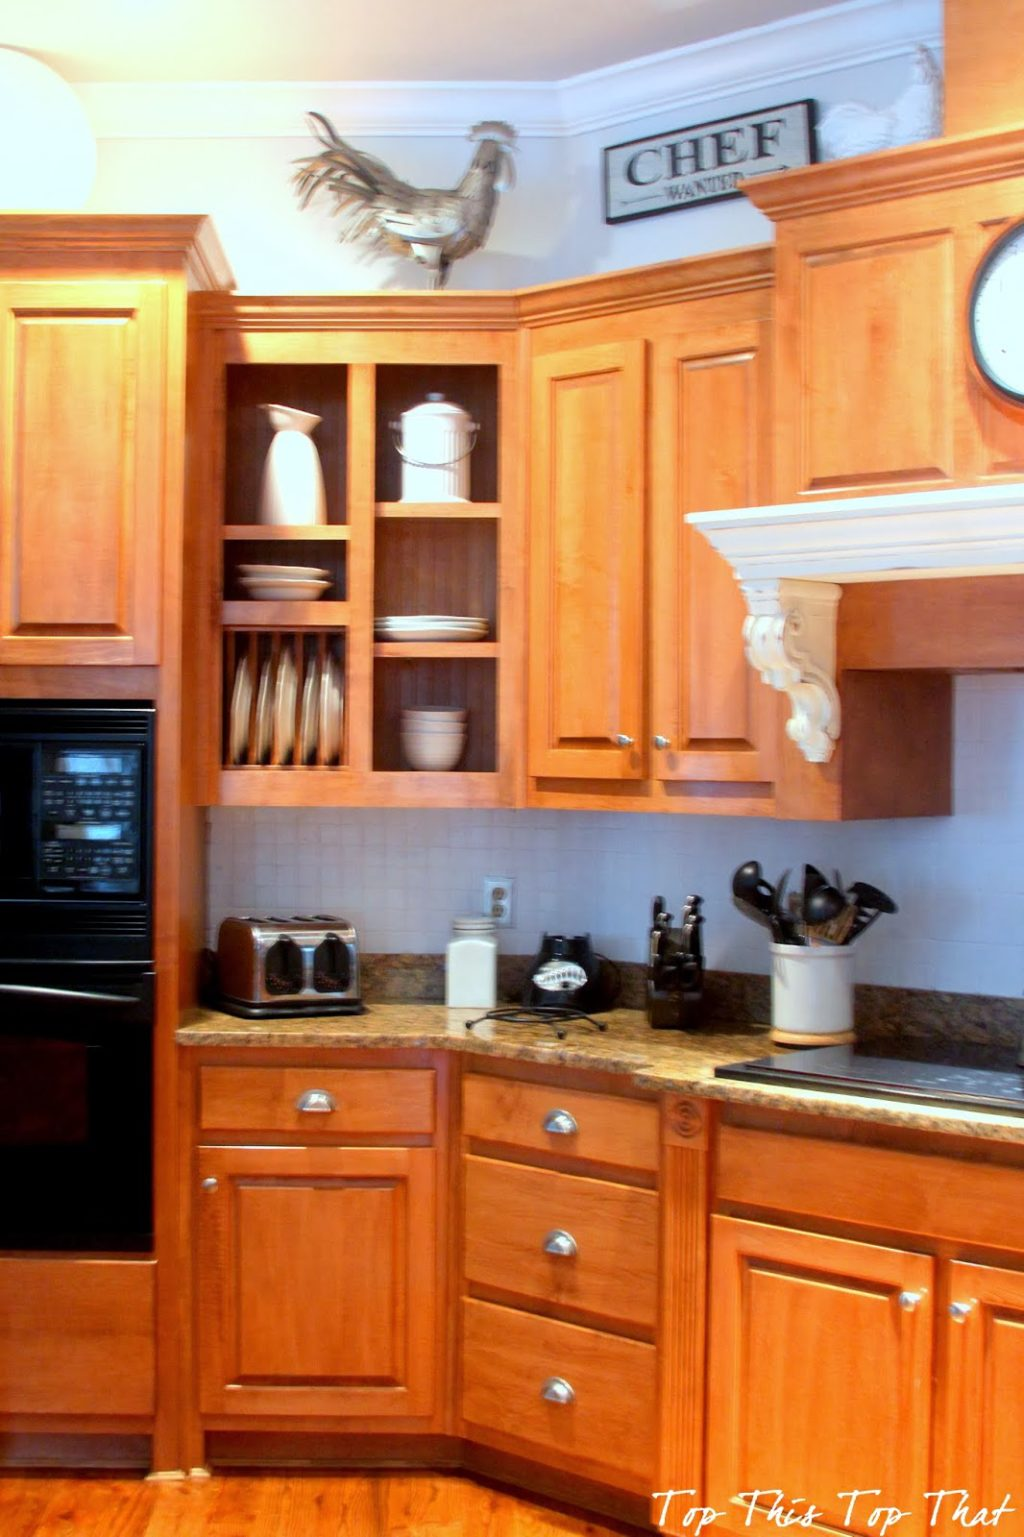 Project kitchen cabinets update duke manor farm for Kitchen cabinets upgrade